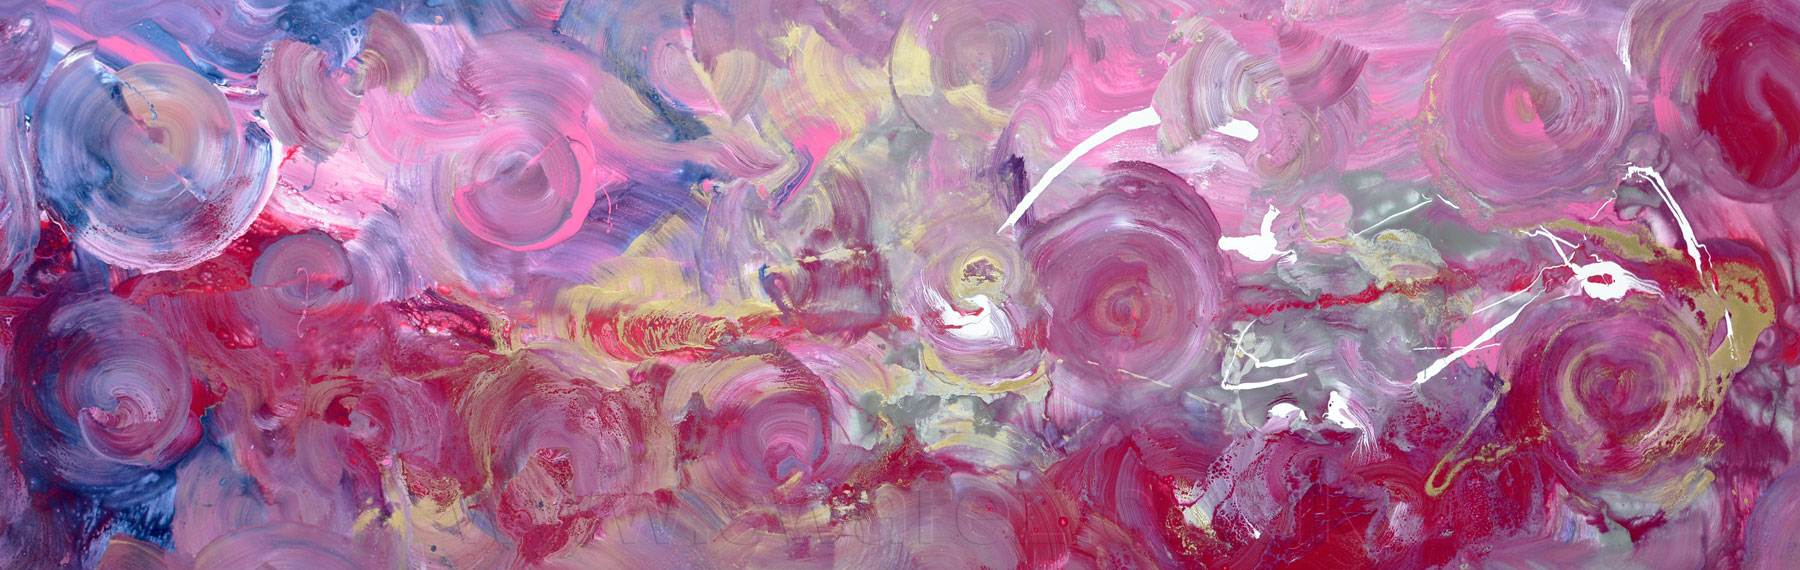 Riotous Behaviour pink and gold art